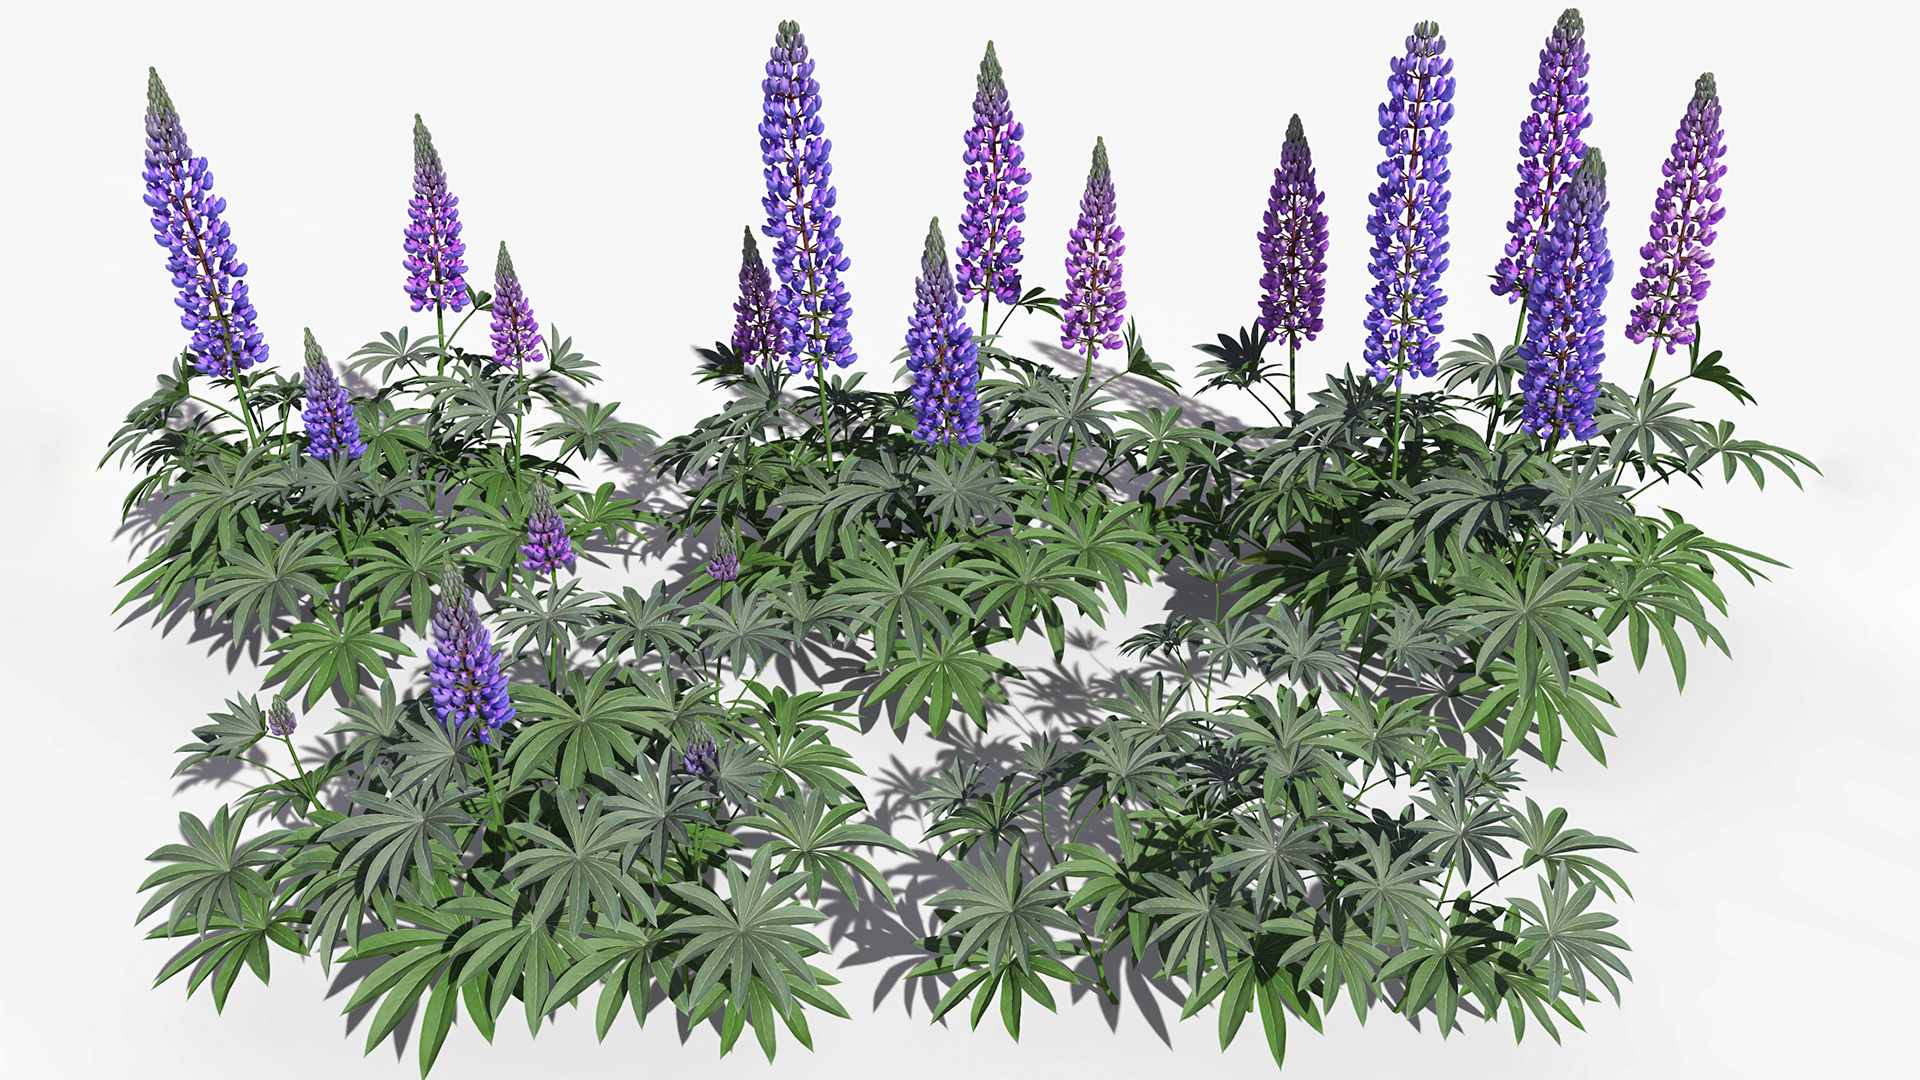 3D model of the Large-leaved lupine Lupinus polyphyllus different presets